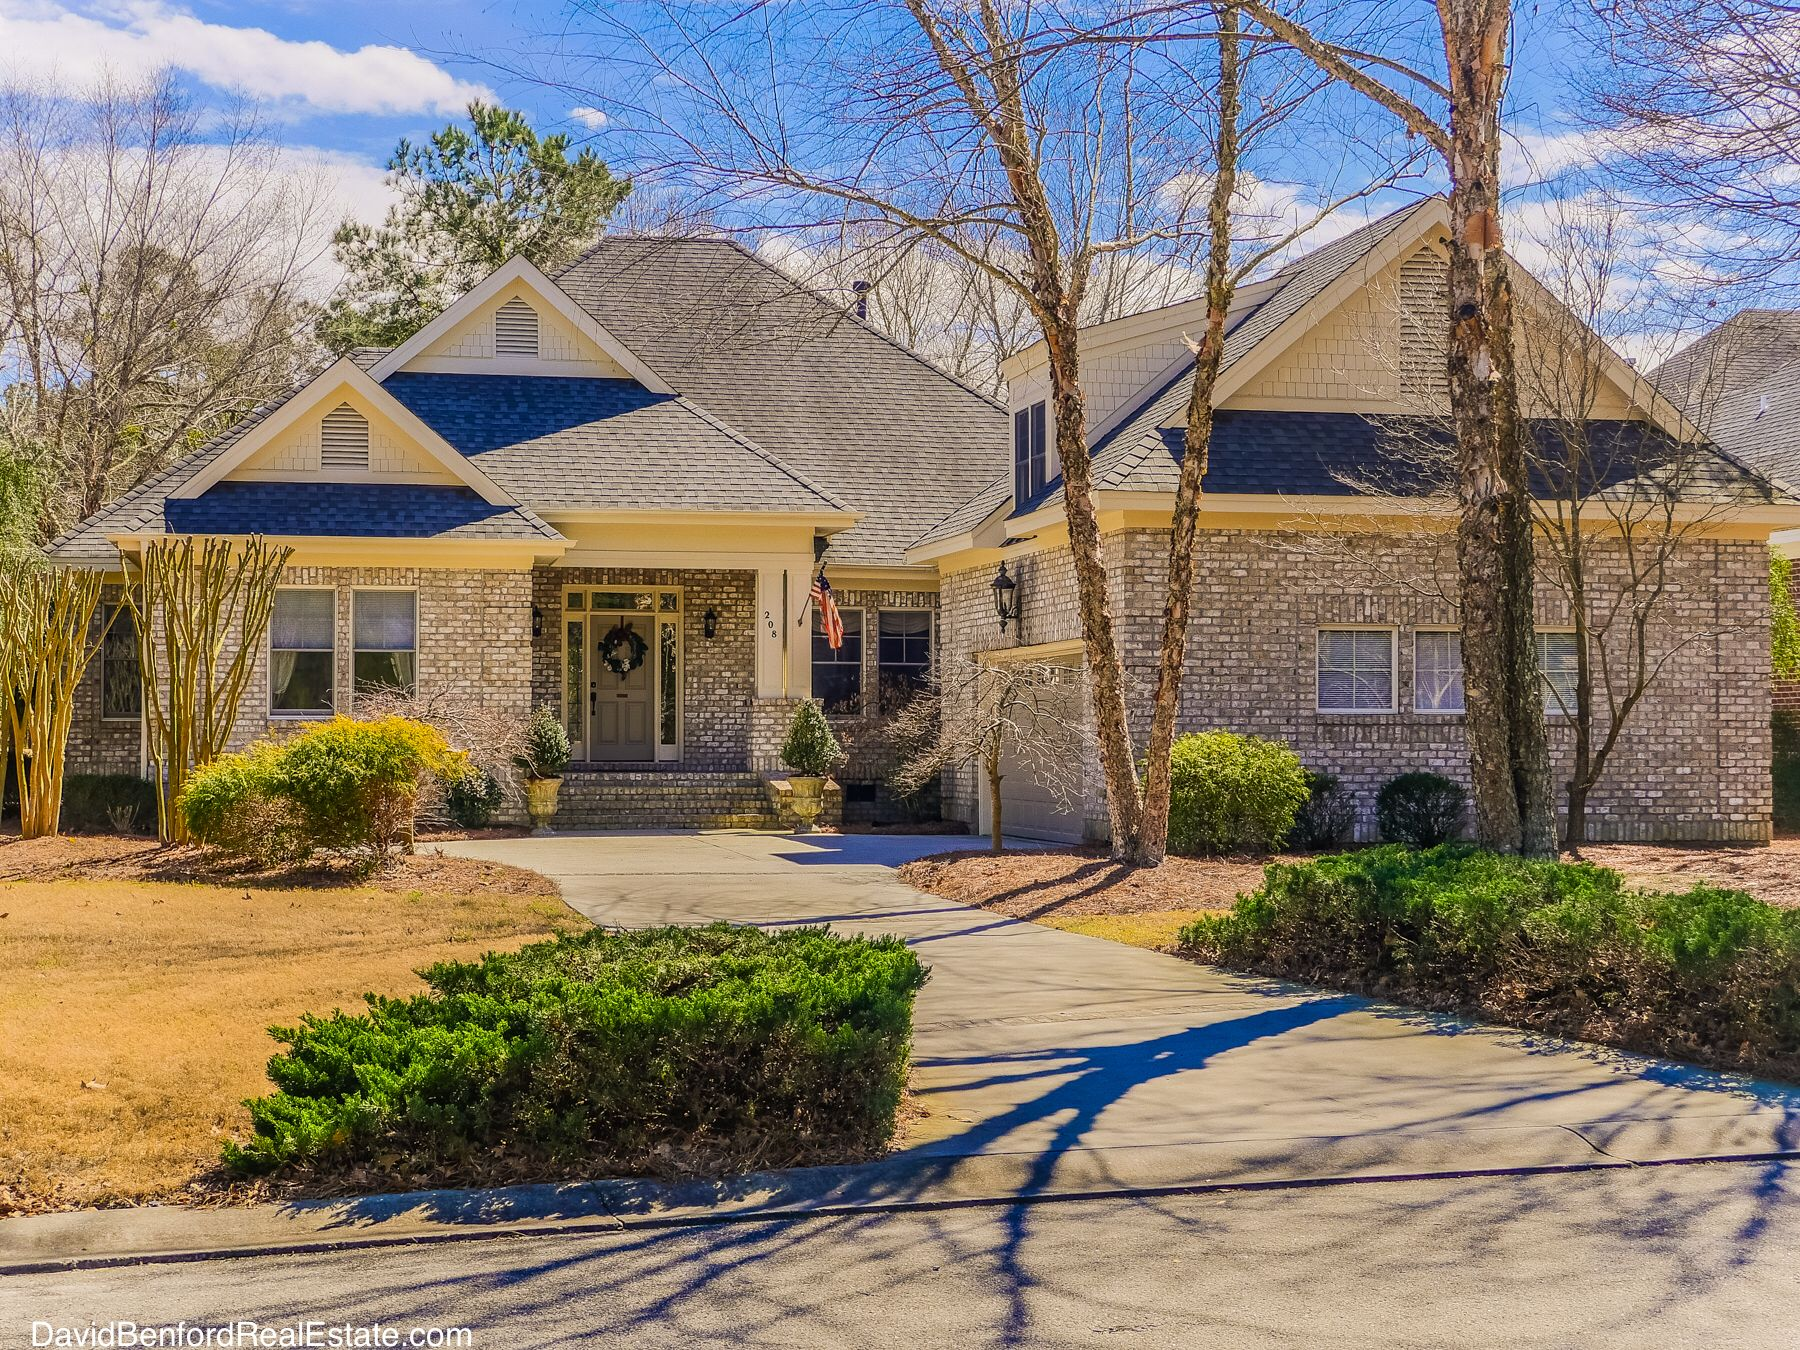 208 Cedar Point Dr Wallace, NC is located in a Master ...